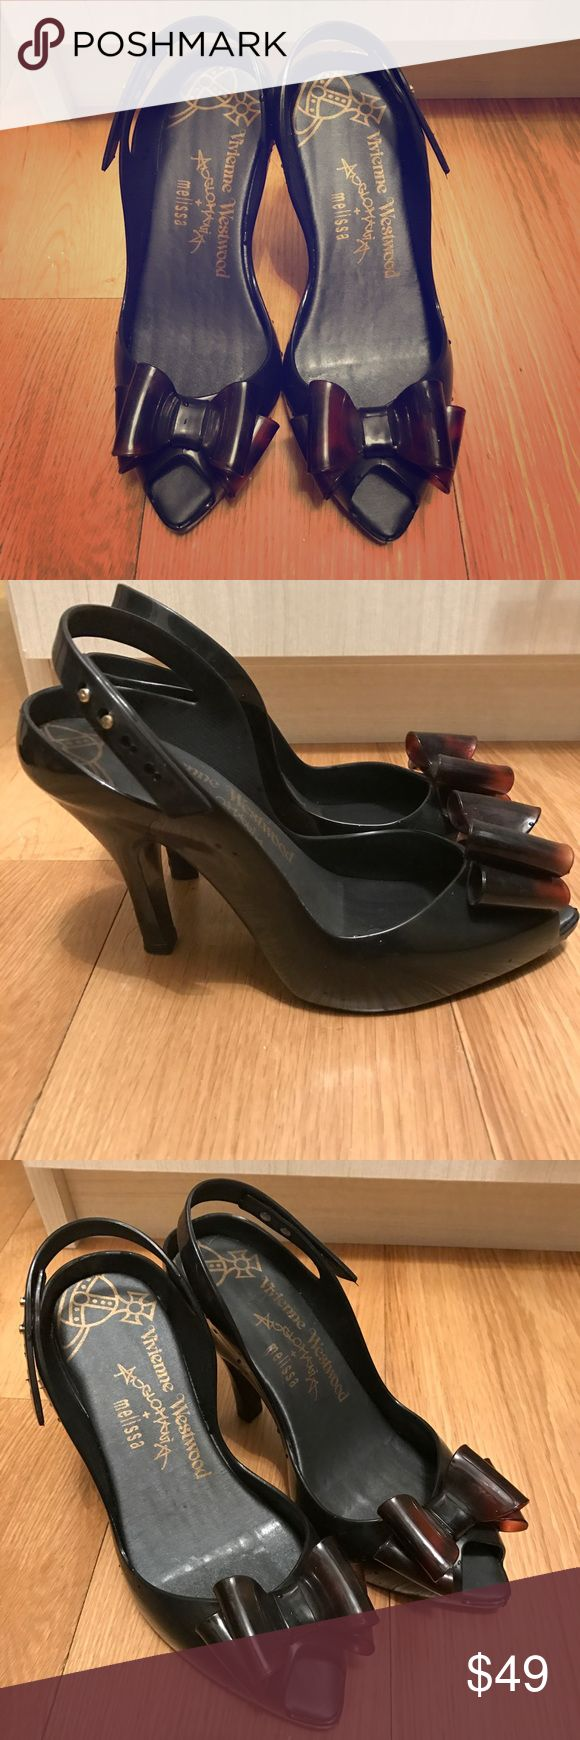 Melissa jelly high heels. The most classic designed Melissa Jelly Shoes.  Mint condition. Very beautiful and comfortable to wear! No trade. Melissa Shoes Heels